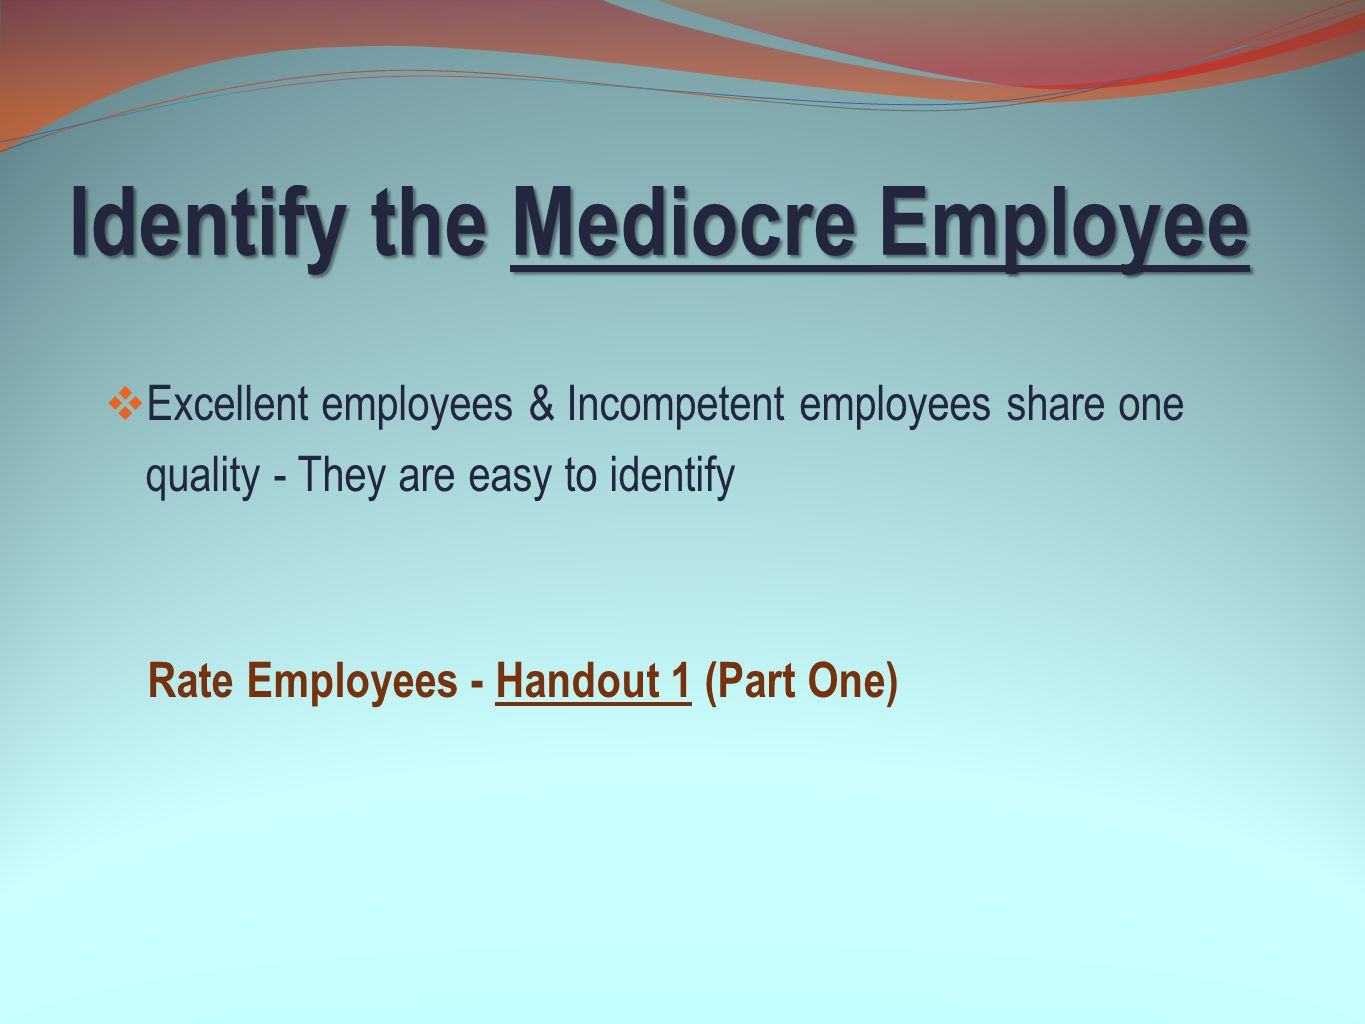 Identify the Mediocre Employee  They have satisfactory attendance and are pleasant to others  But they are very unorganized and miss deadlines  They assist with school or department activities outside of their job duties (Sports, Parent Activities, Staff Events, etc.)  But they spend too much time socializing during work hours  They possess necessary job knowledge to complete tasks  But they are not accountable, and will blame others when they cannot meet a deadline Common Characteristics